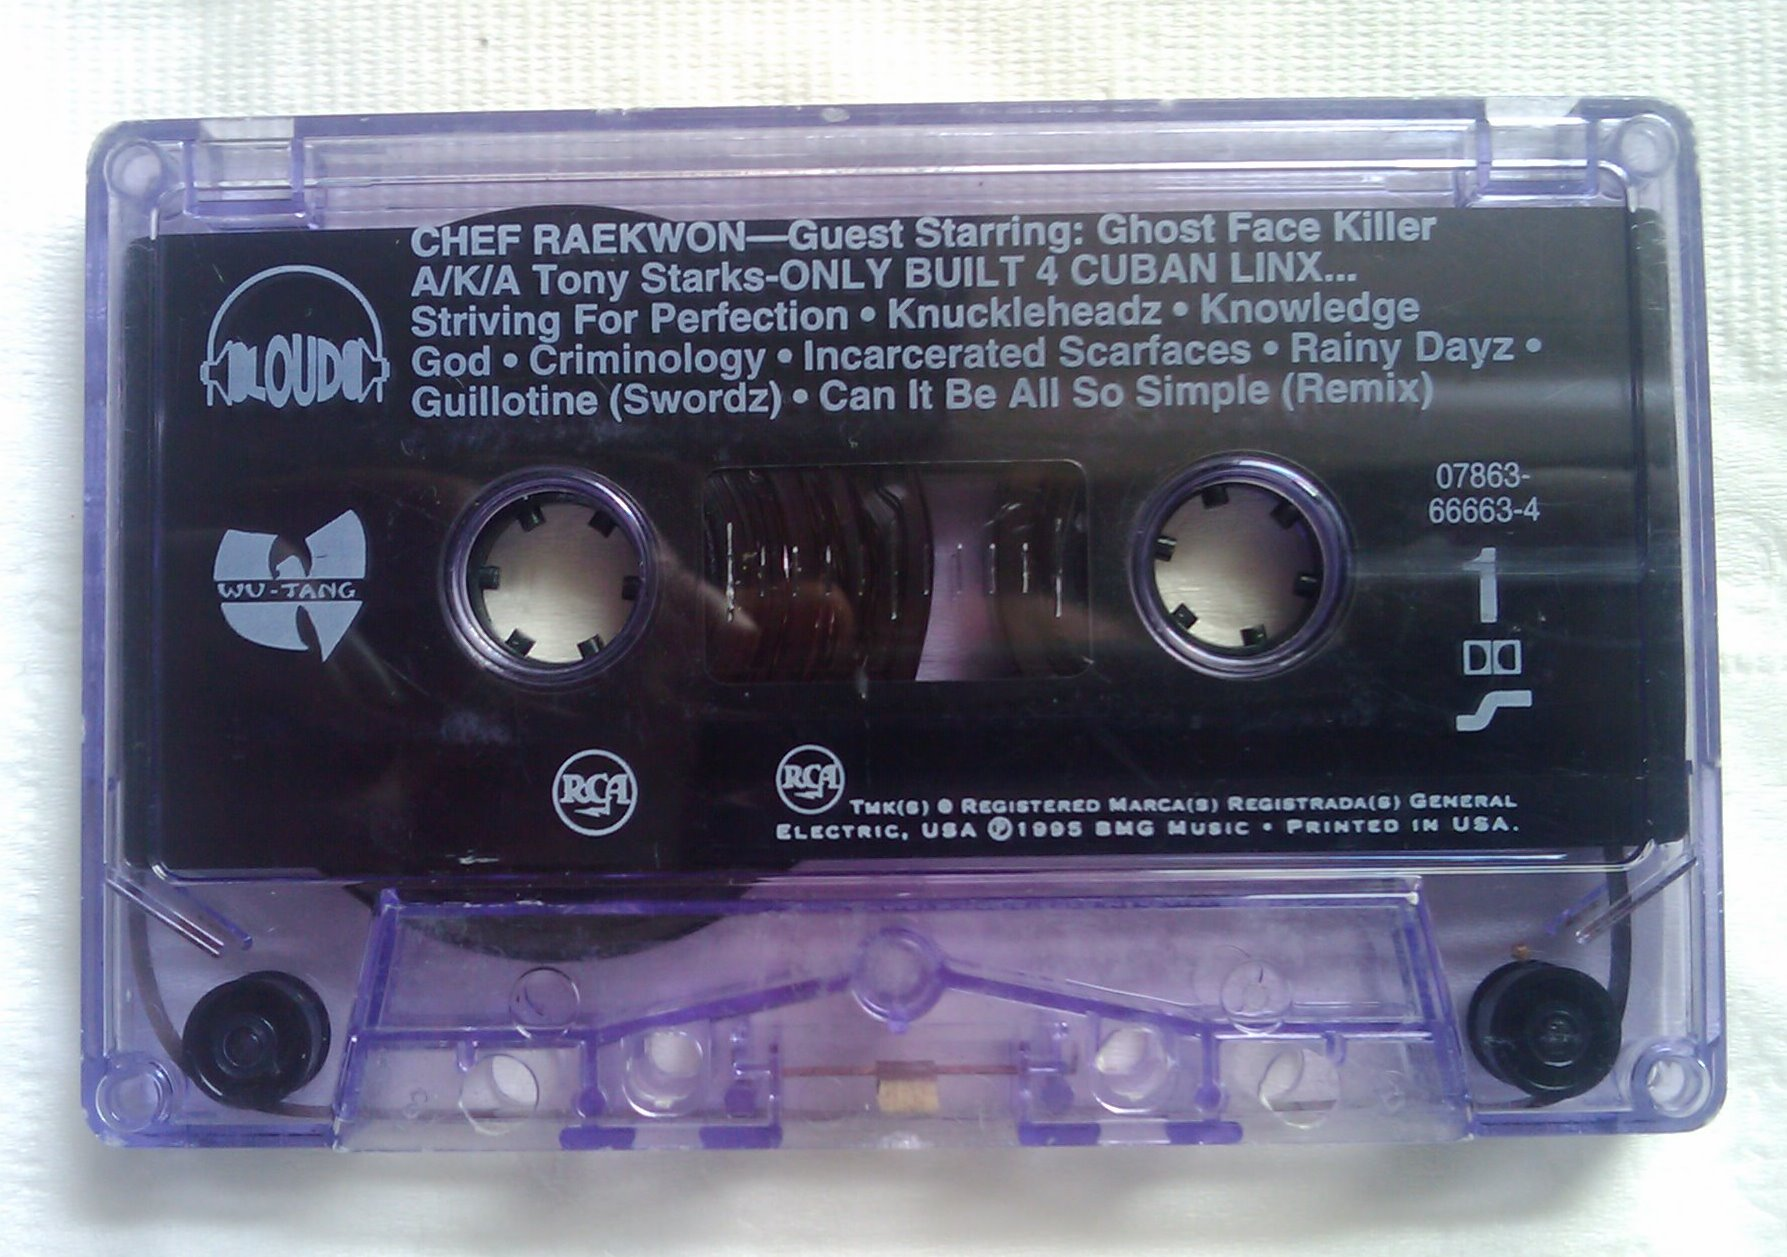 http://synamatiq.files.wordpress.com/2009/09/purple-tape.jpg